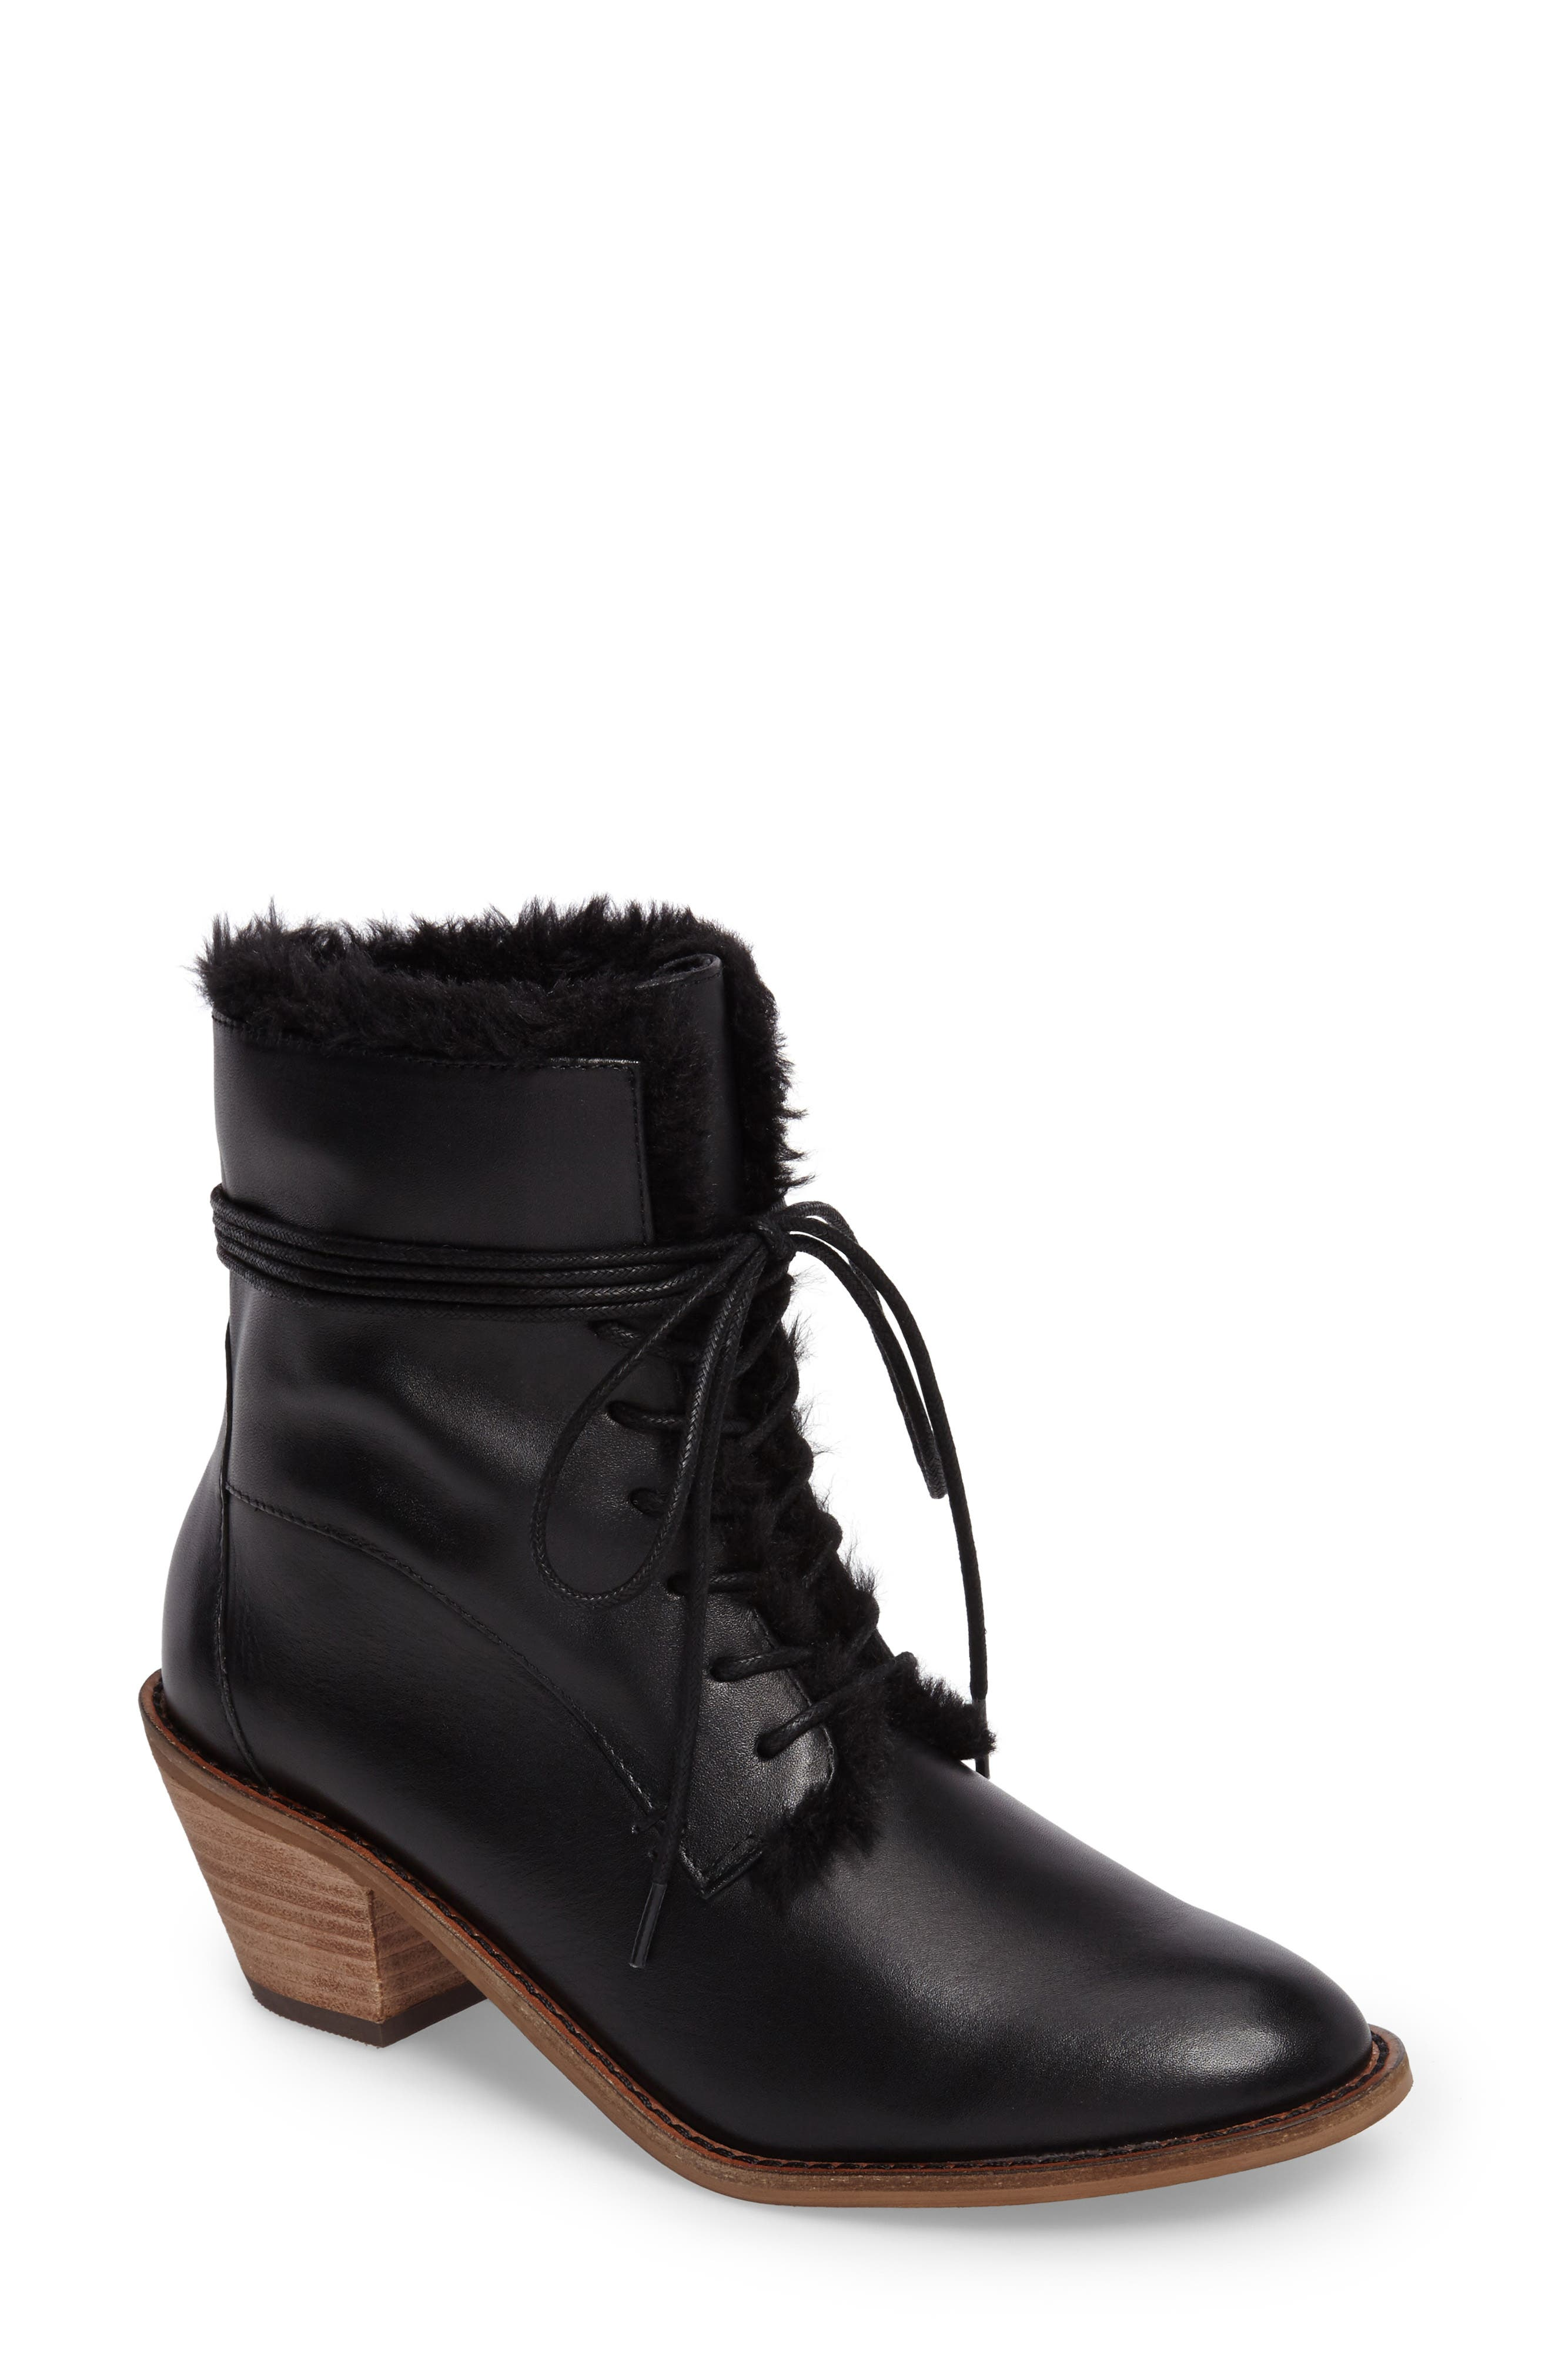 Alternate Image 1 Selected - Kelsi Dagger Brooklyn Kingsdale Lace-Up Bootie (Women)